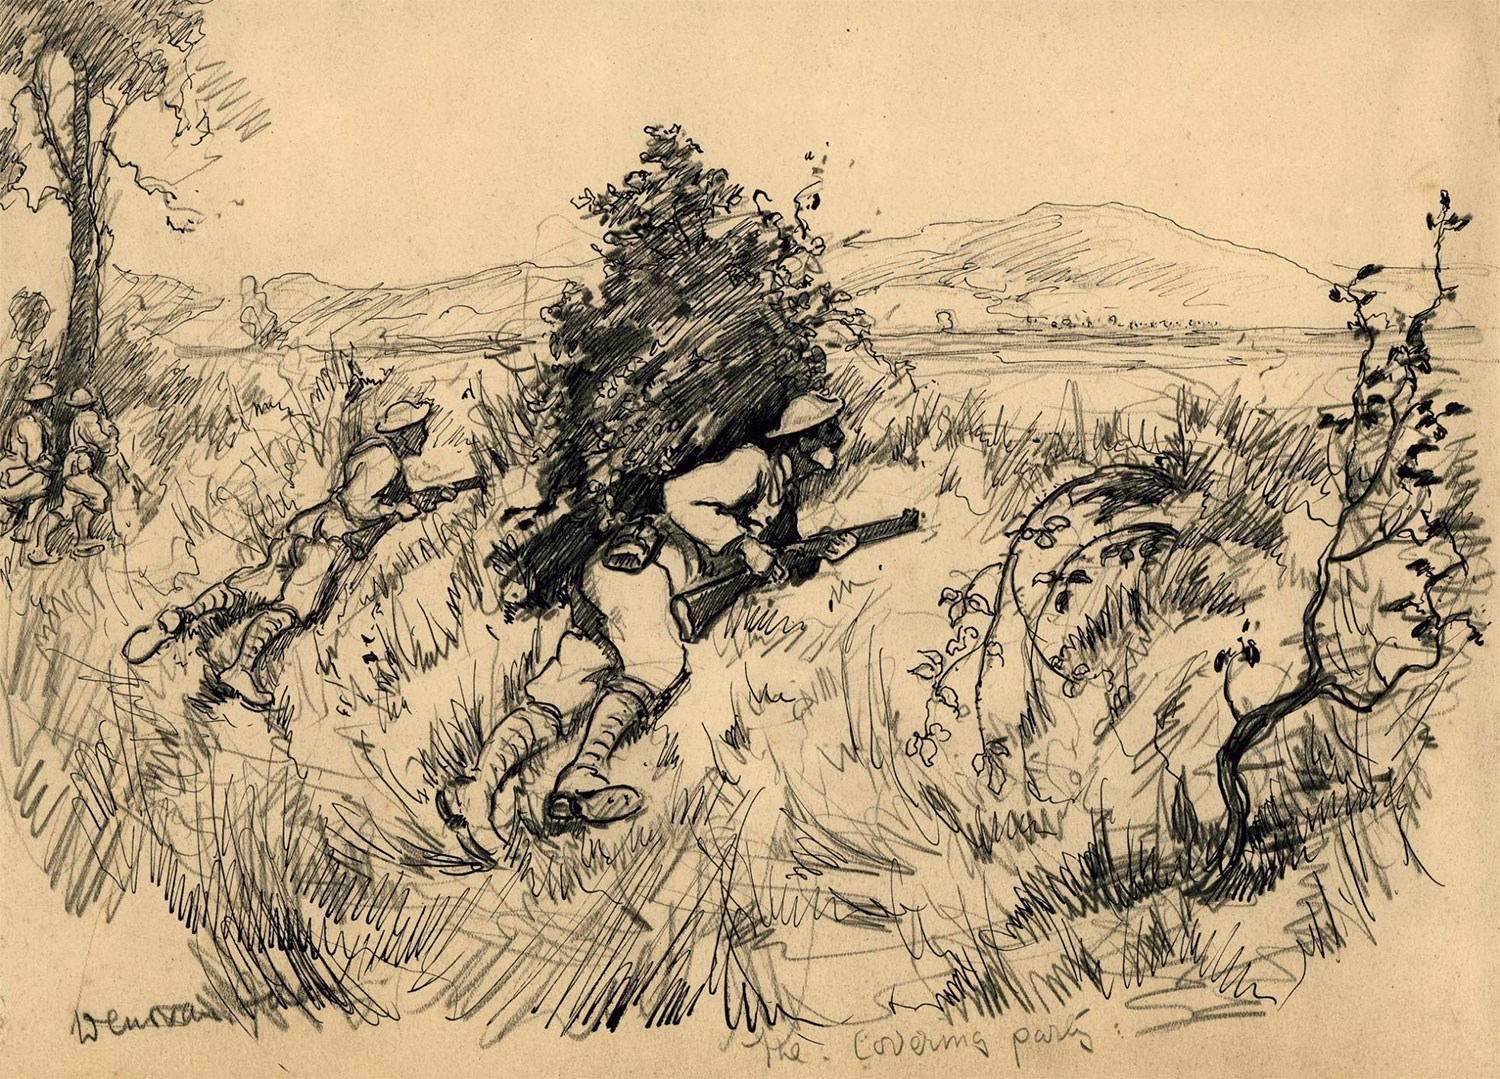 The Covering Party by Lance Corporal Joseph Adam, dated 1918. The Scottish Horse was a part-time yeomanry mounted regiment. During the First World War the regiment served dismounted as an infantry battalion. This is one of a series of drawings depicting the battalion on active service in Salonika, fighting the Bulgarians on the Macedonian Front.